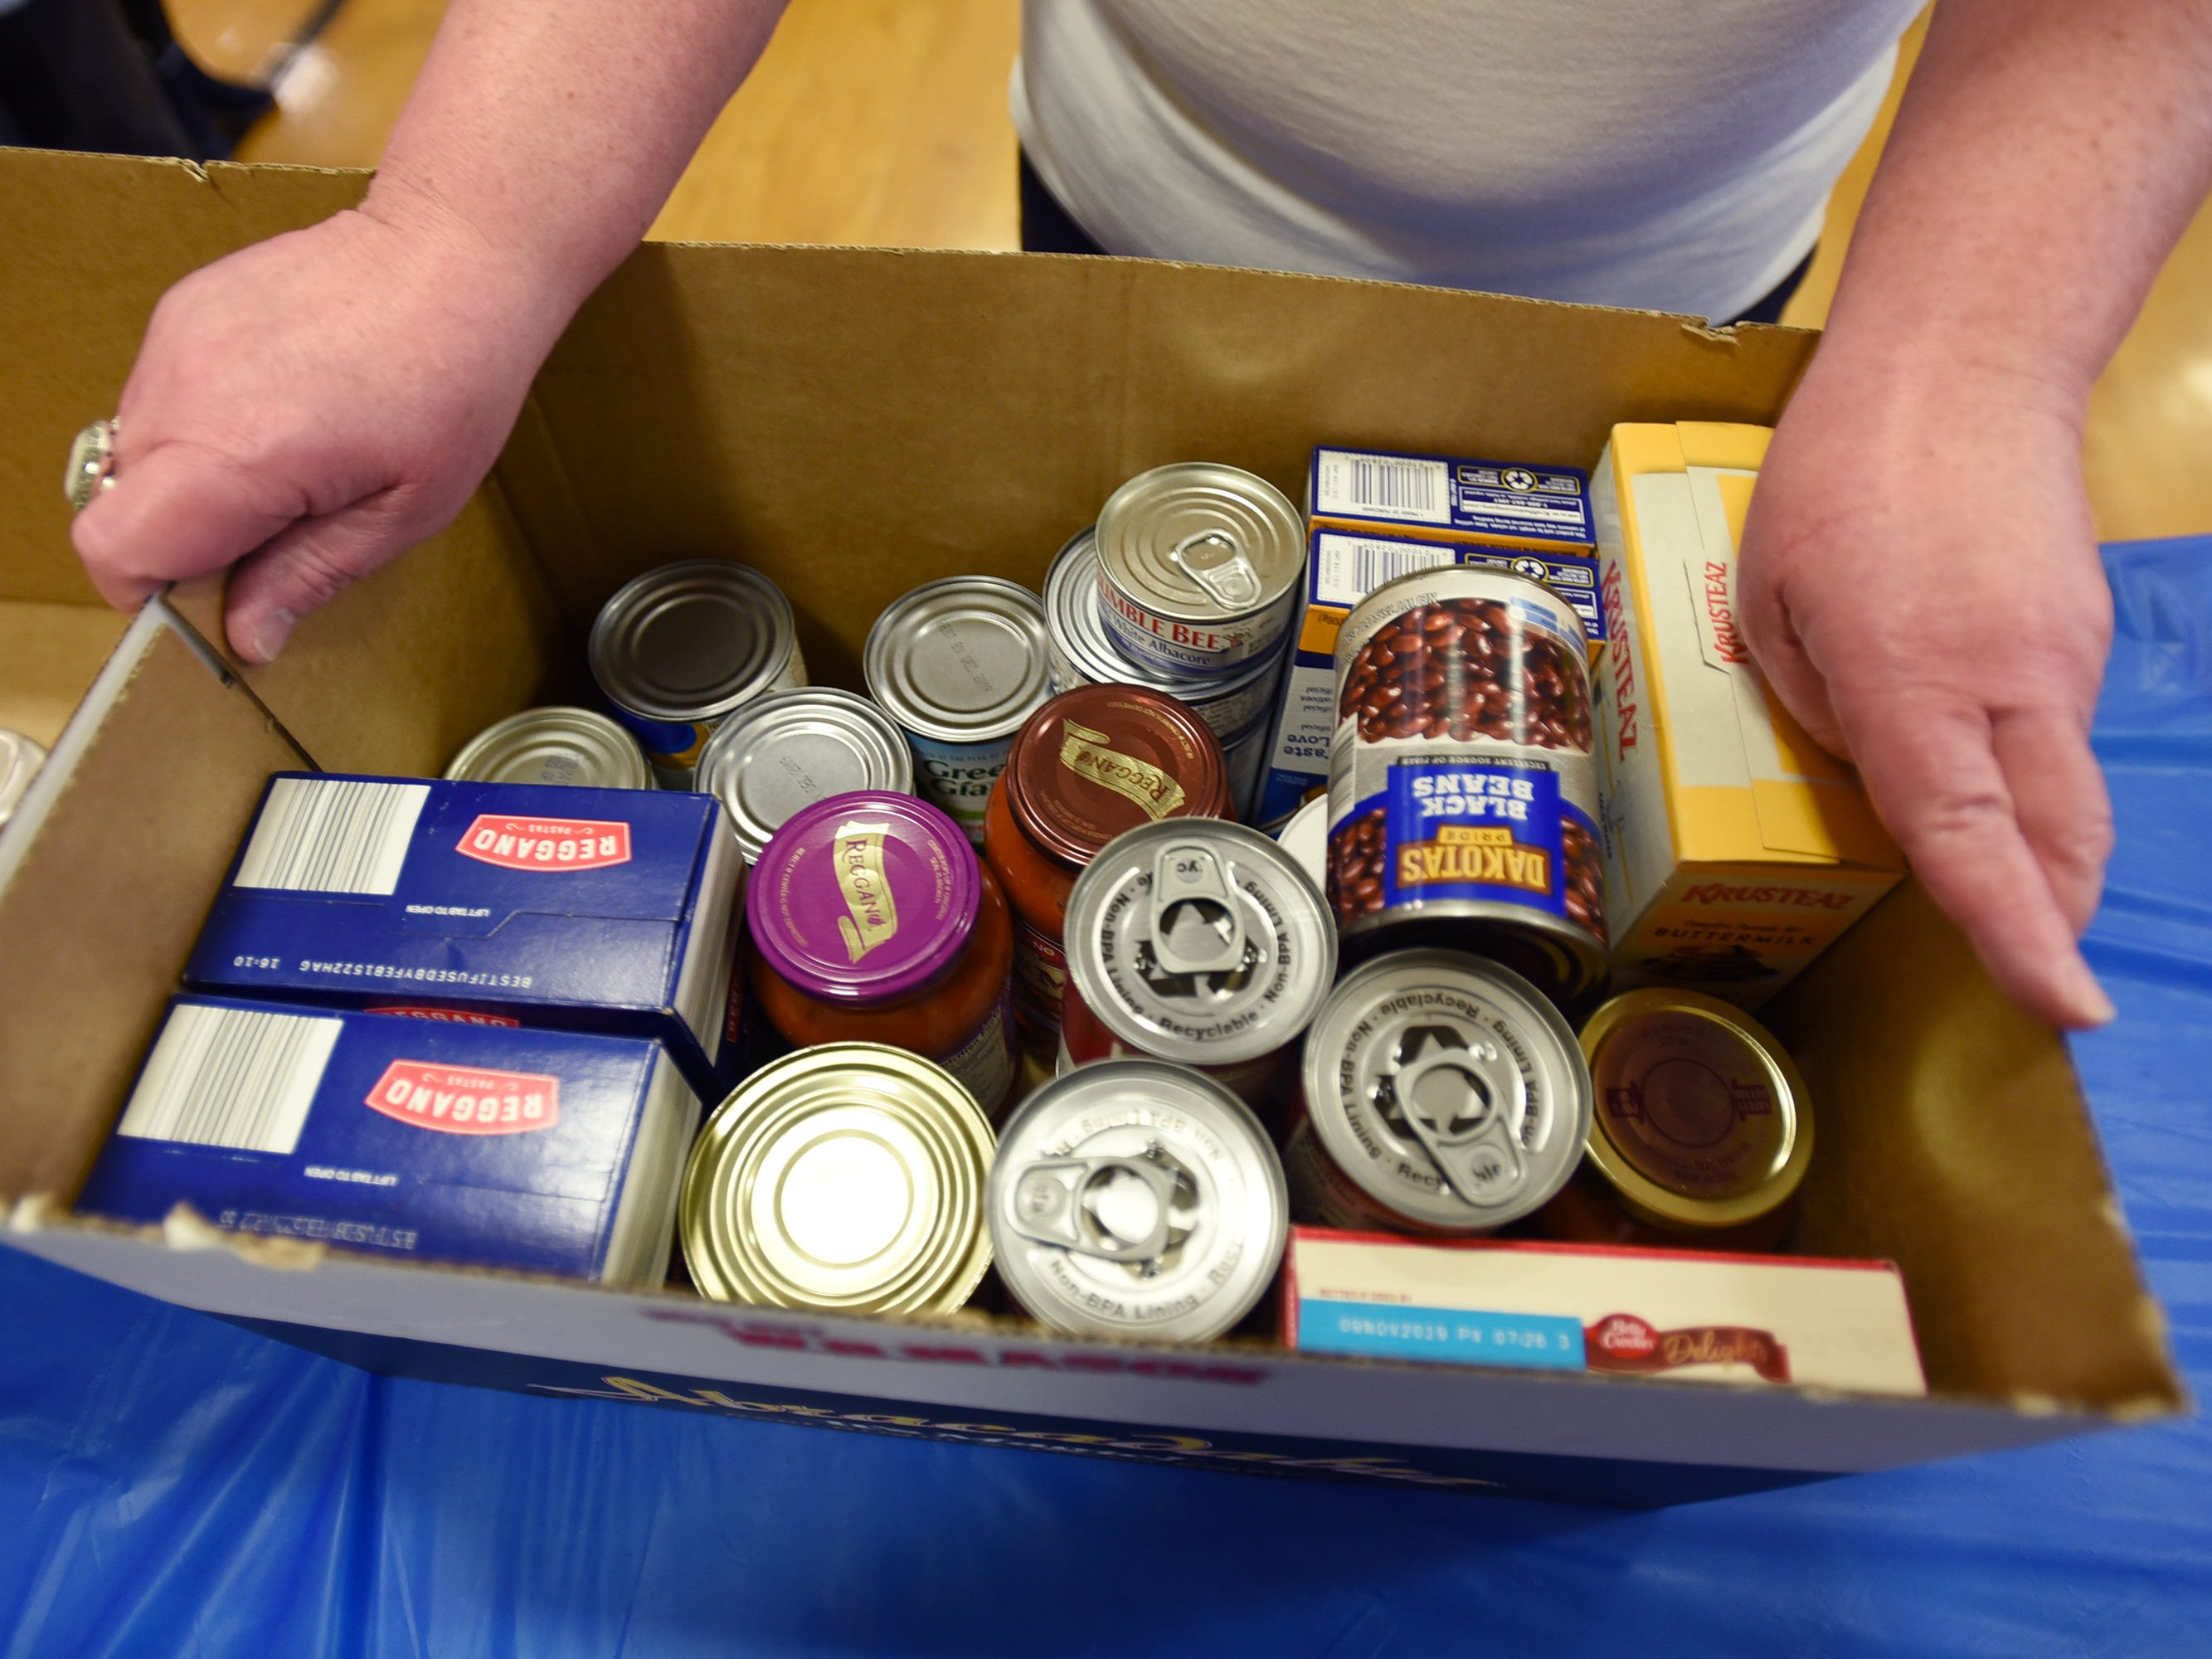 Close up photo of donated food is seen during the 3rd annual March Madness Food & Fun Day to benefit the Rutherford Food Pantry hosted by the Rutherford Education Association at Washington School in Rutherford on 03/23/2019.